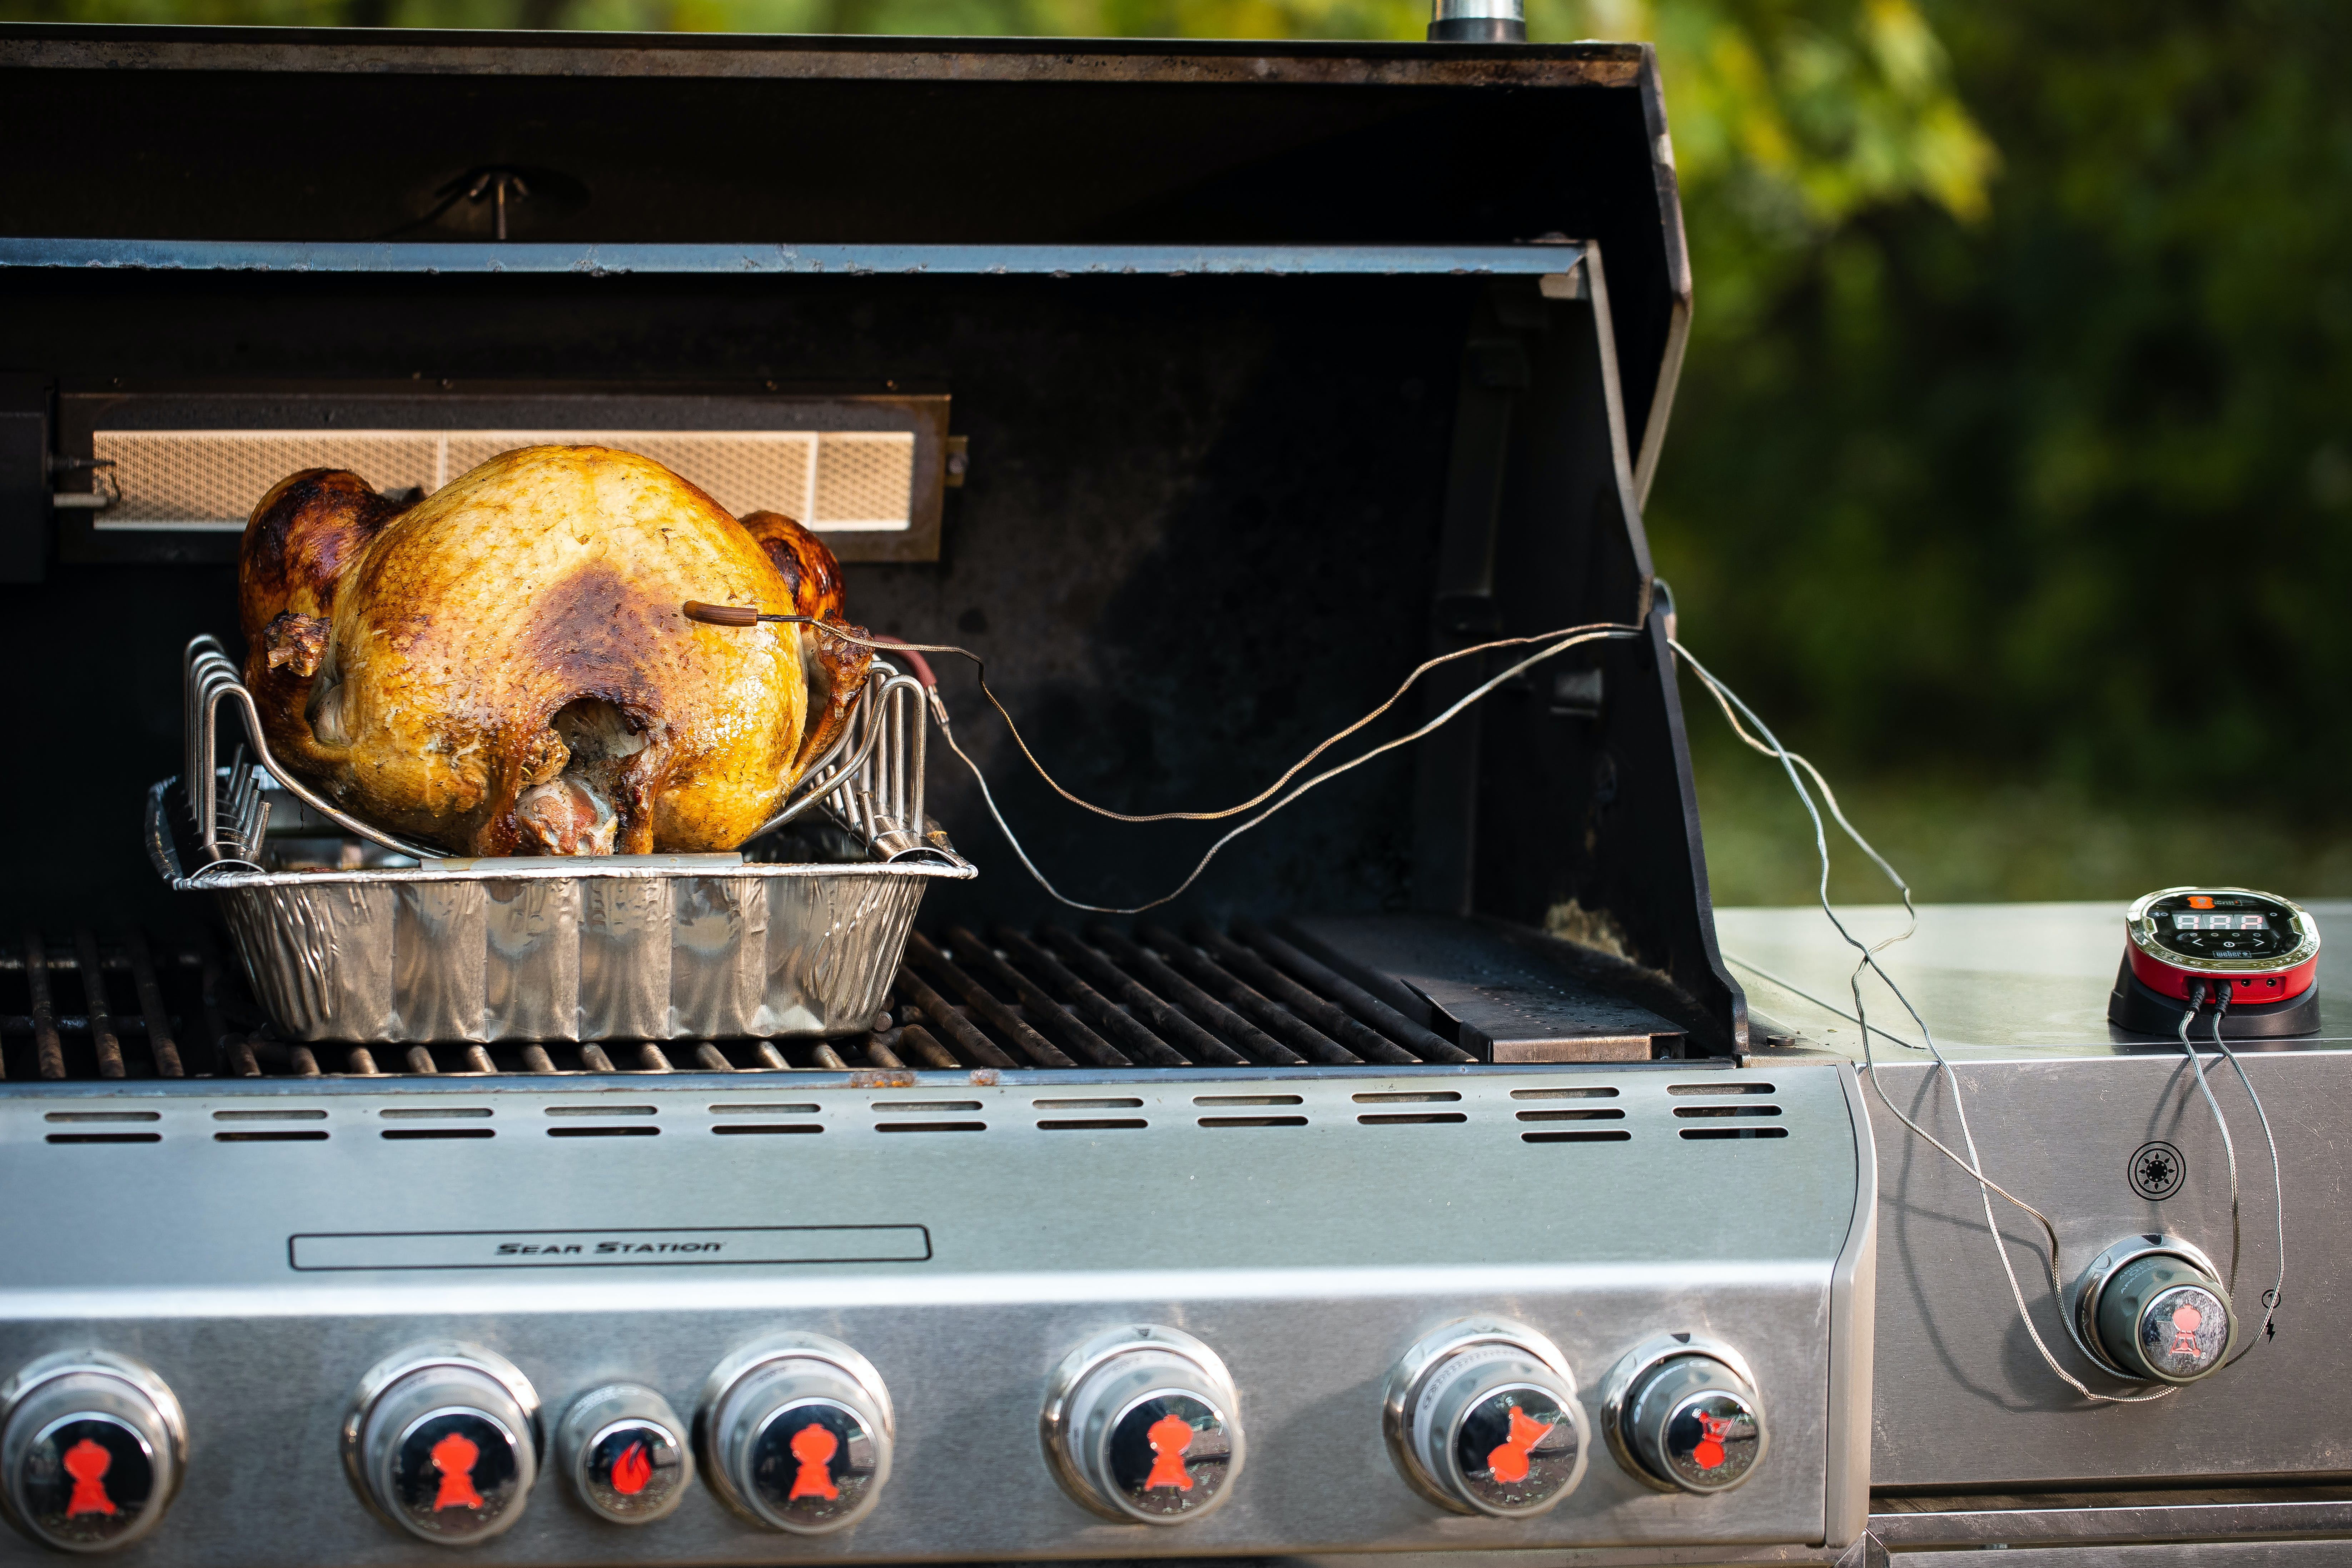 Grilled Turkey On Roasting Rack With I Grill2 On Summit Gas 24